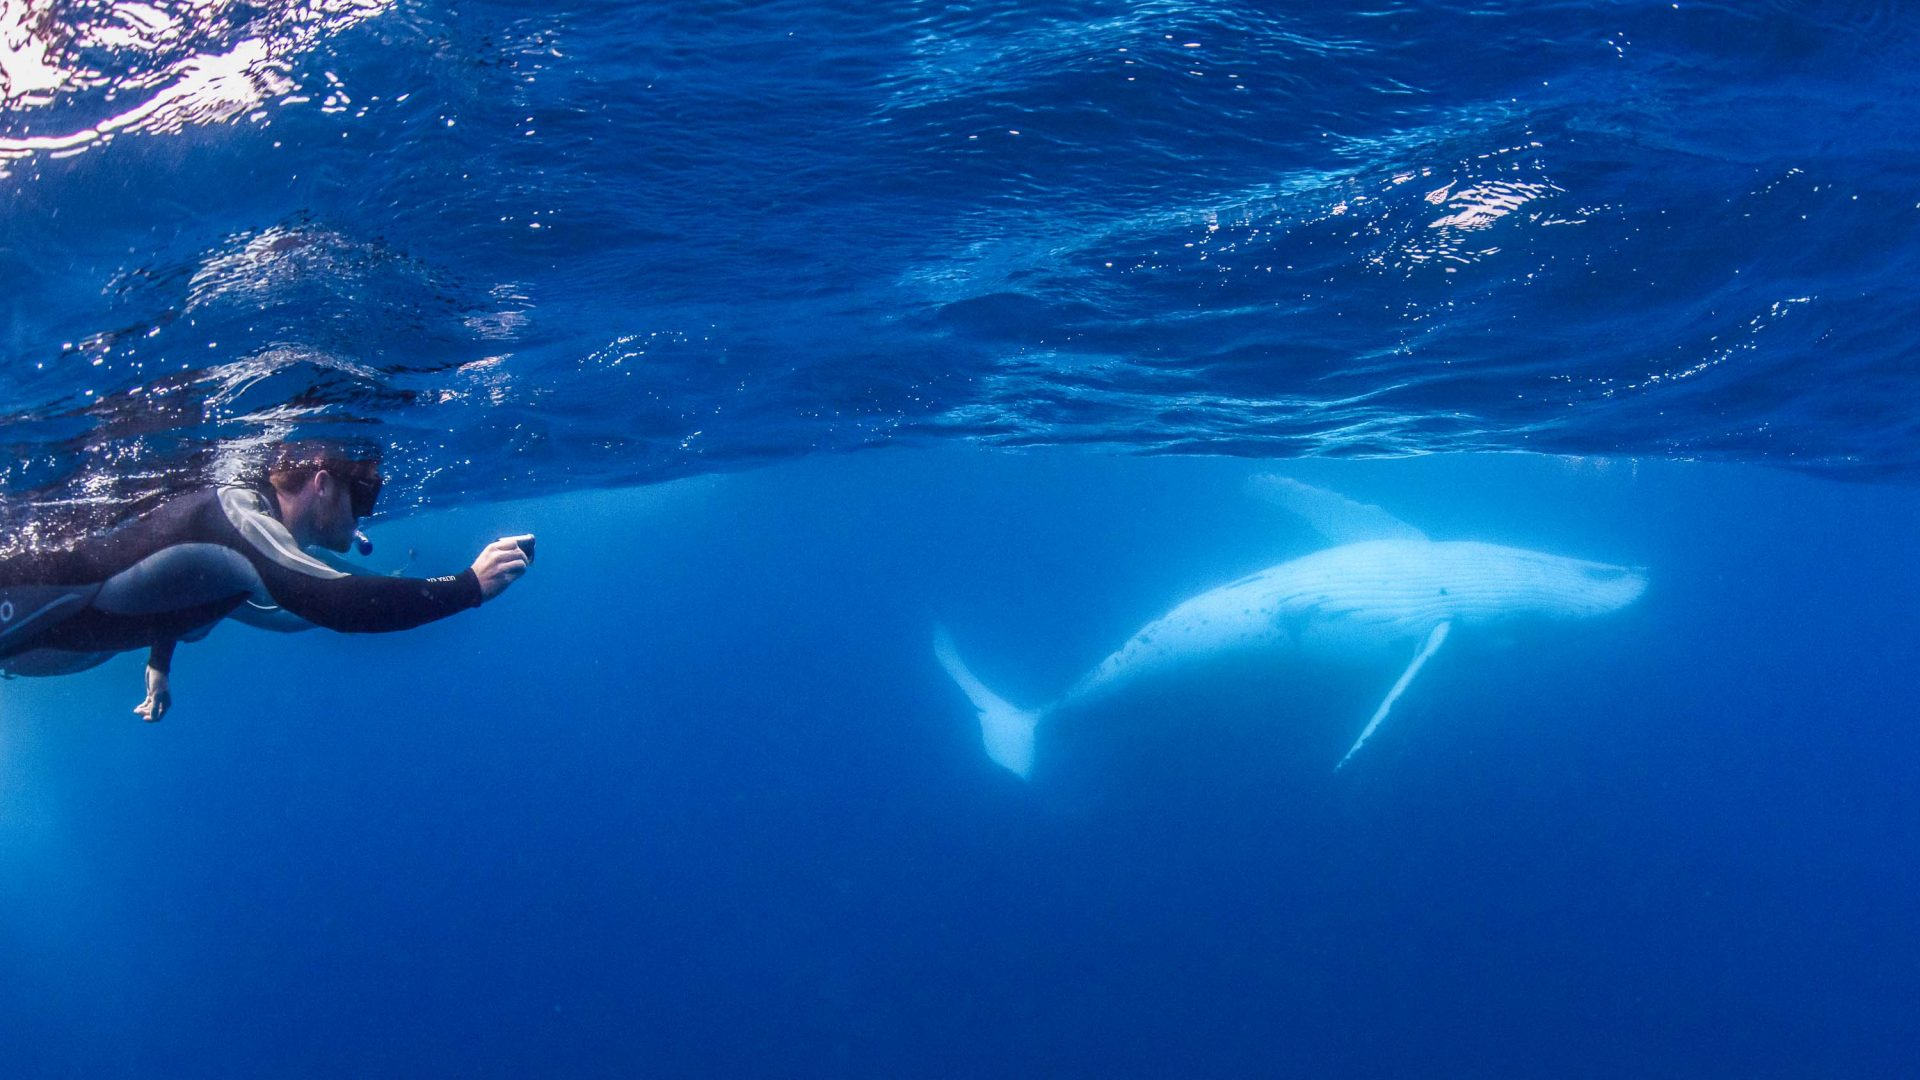 How can swimming with humpback whales help protect the ocean?